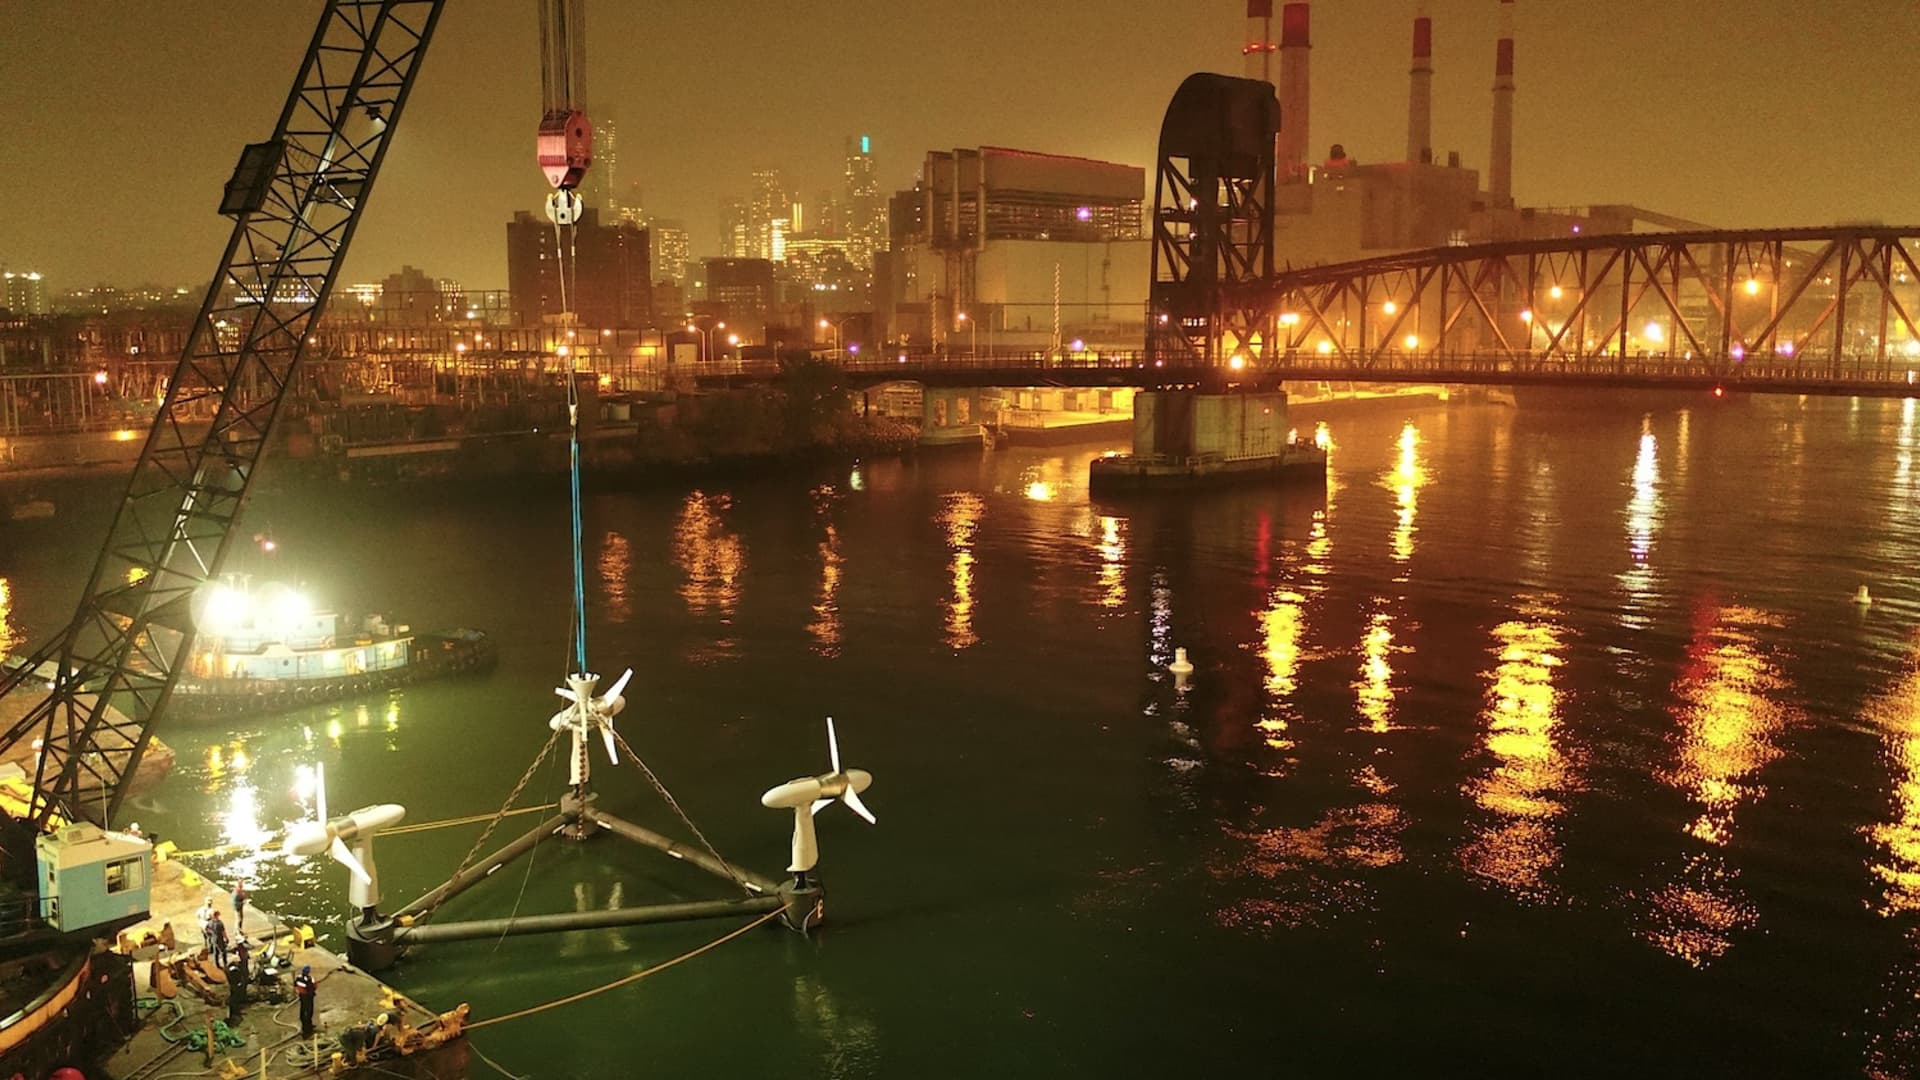 This image shows the three turbines from Verdant Power's Roosevelt Island Tidal Energy project, located in New York's East River.